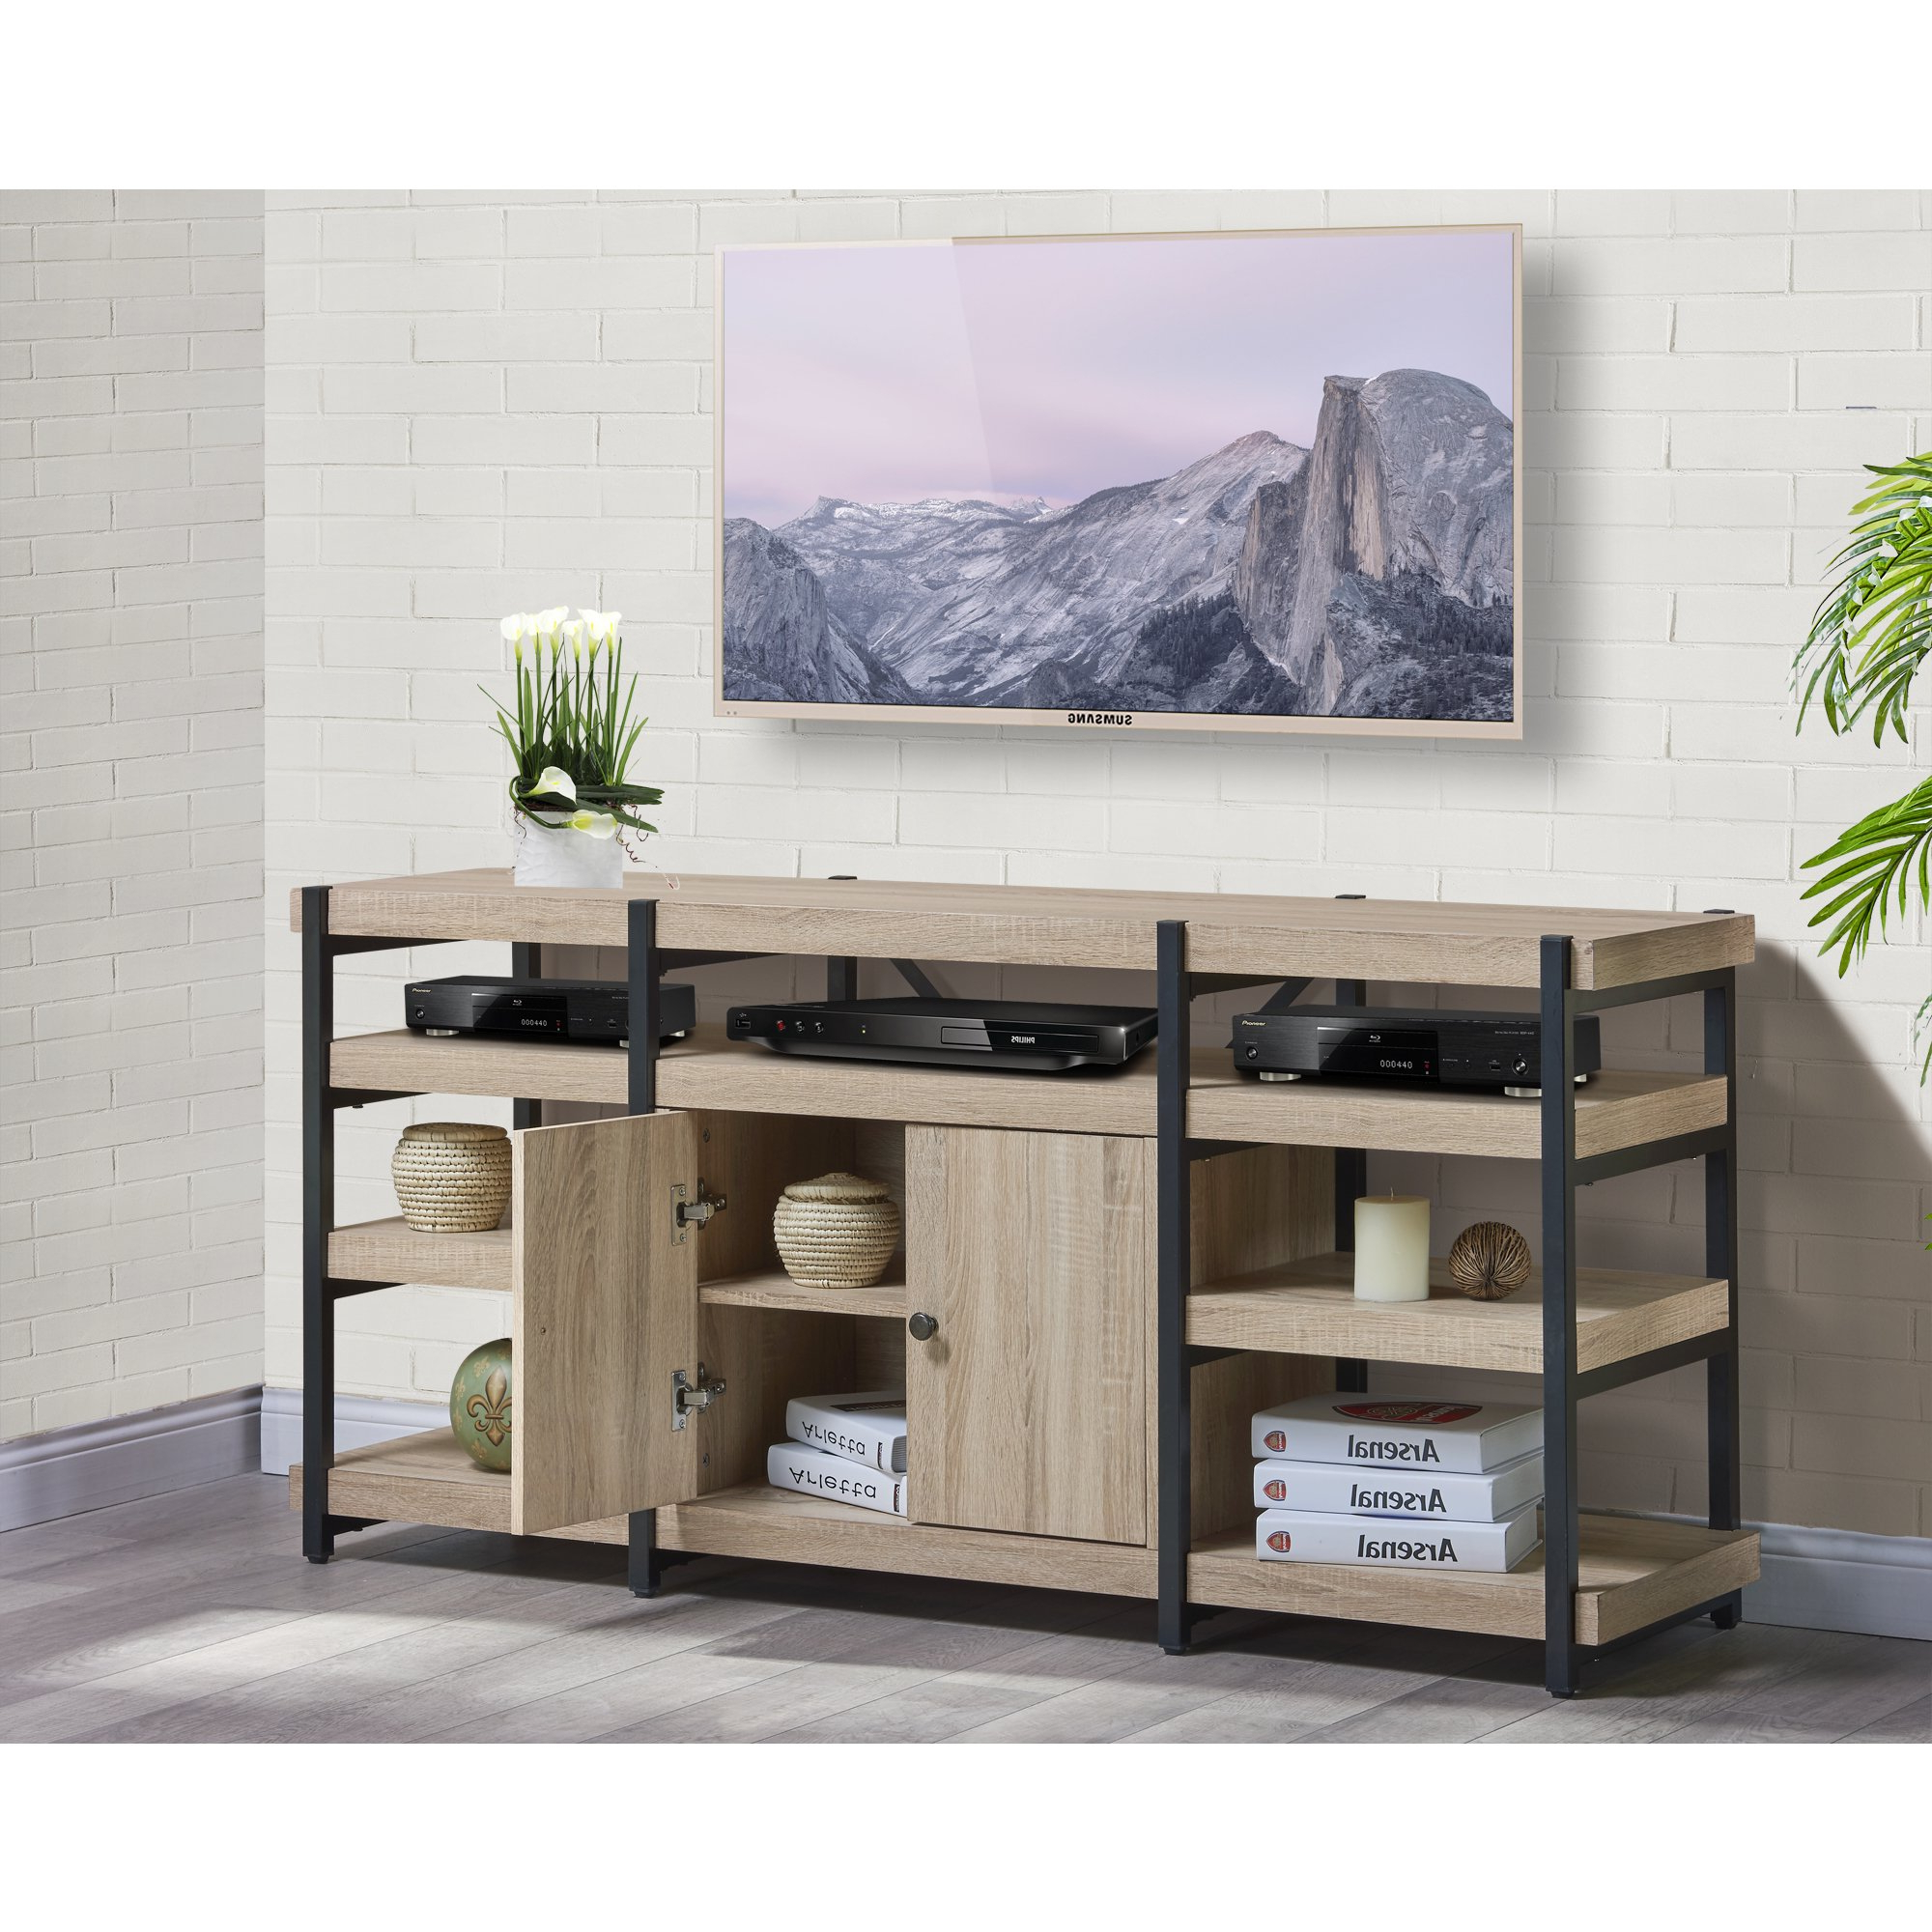 Denver Tv Stands Throughout Popular Shop Denver 61 Inch Tv Stand – Free Shipping Today – Overstock (Gallery 20 of 20)